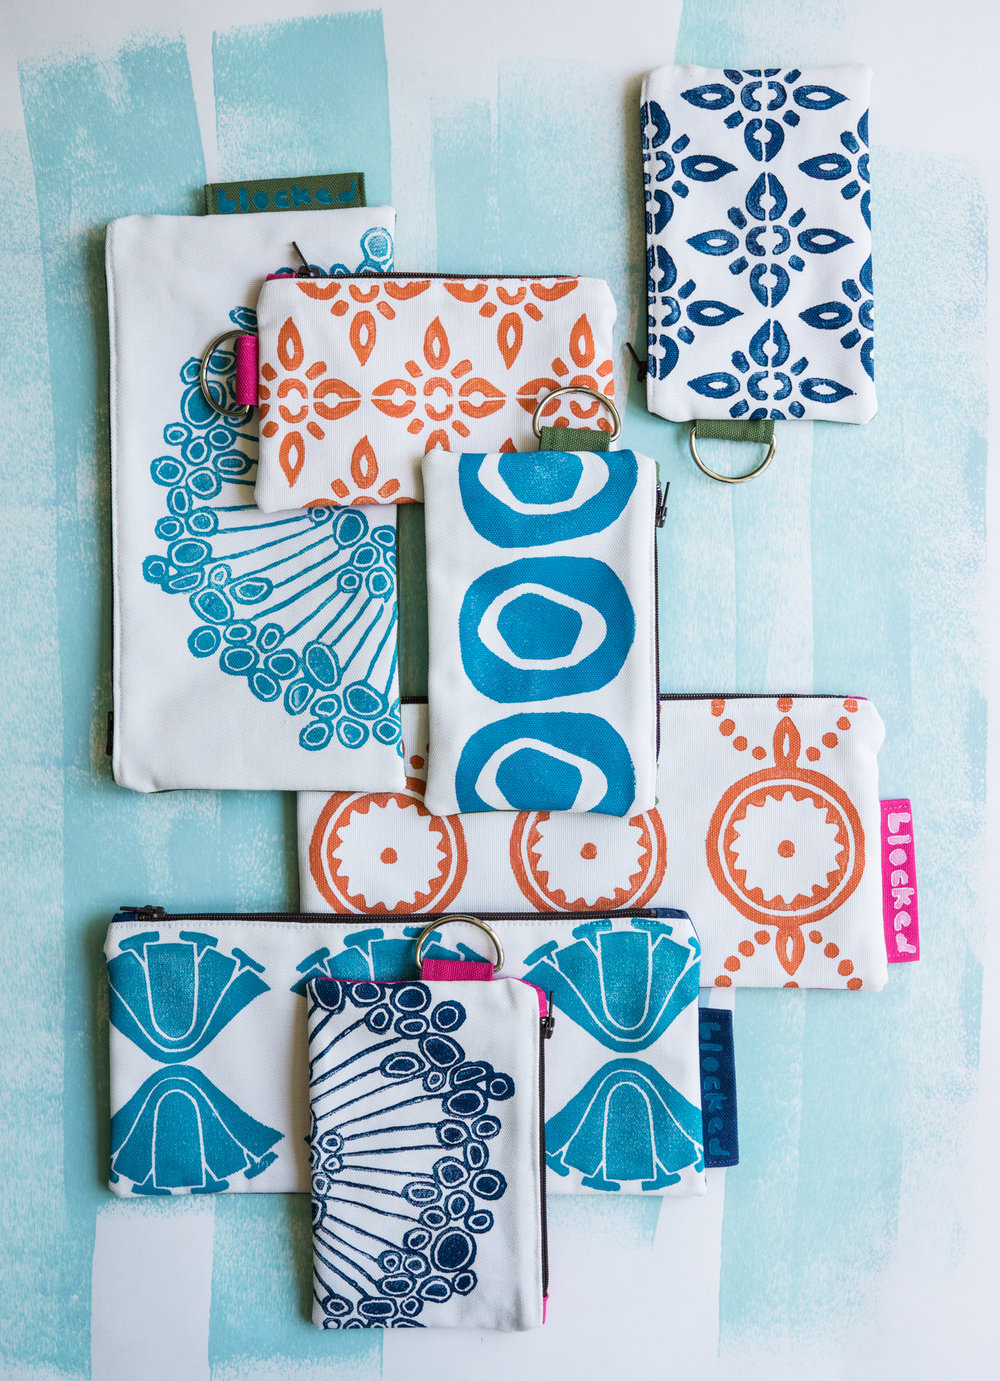 Bright colors and fun designs make Brenna's wallets and purses an everyday pleasure.